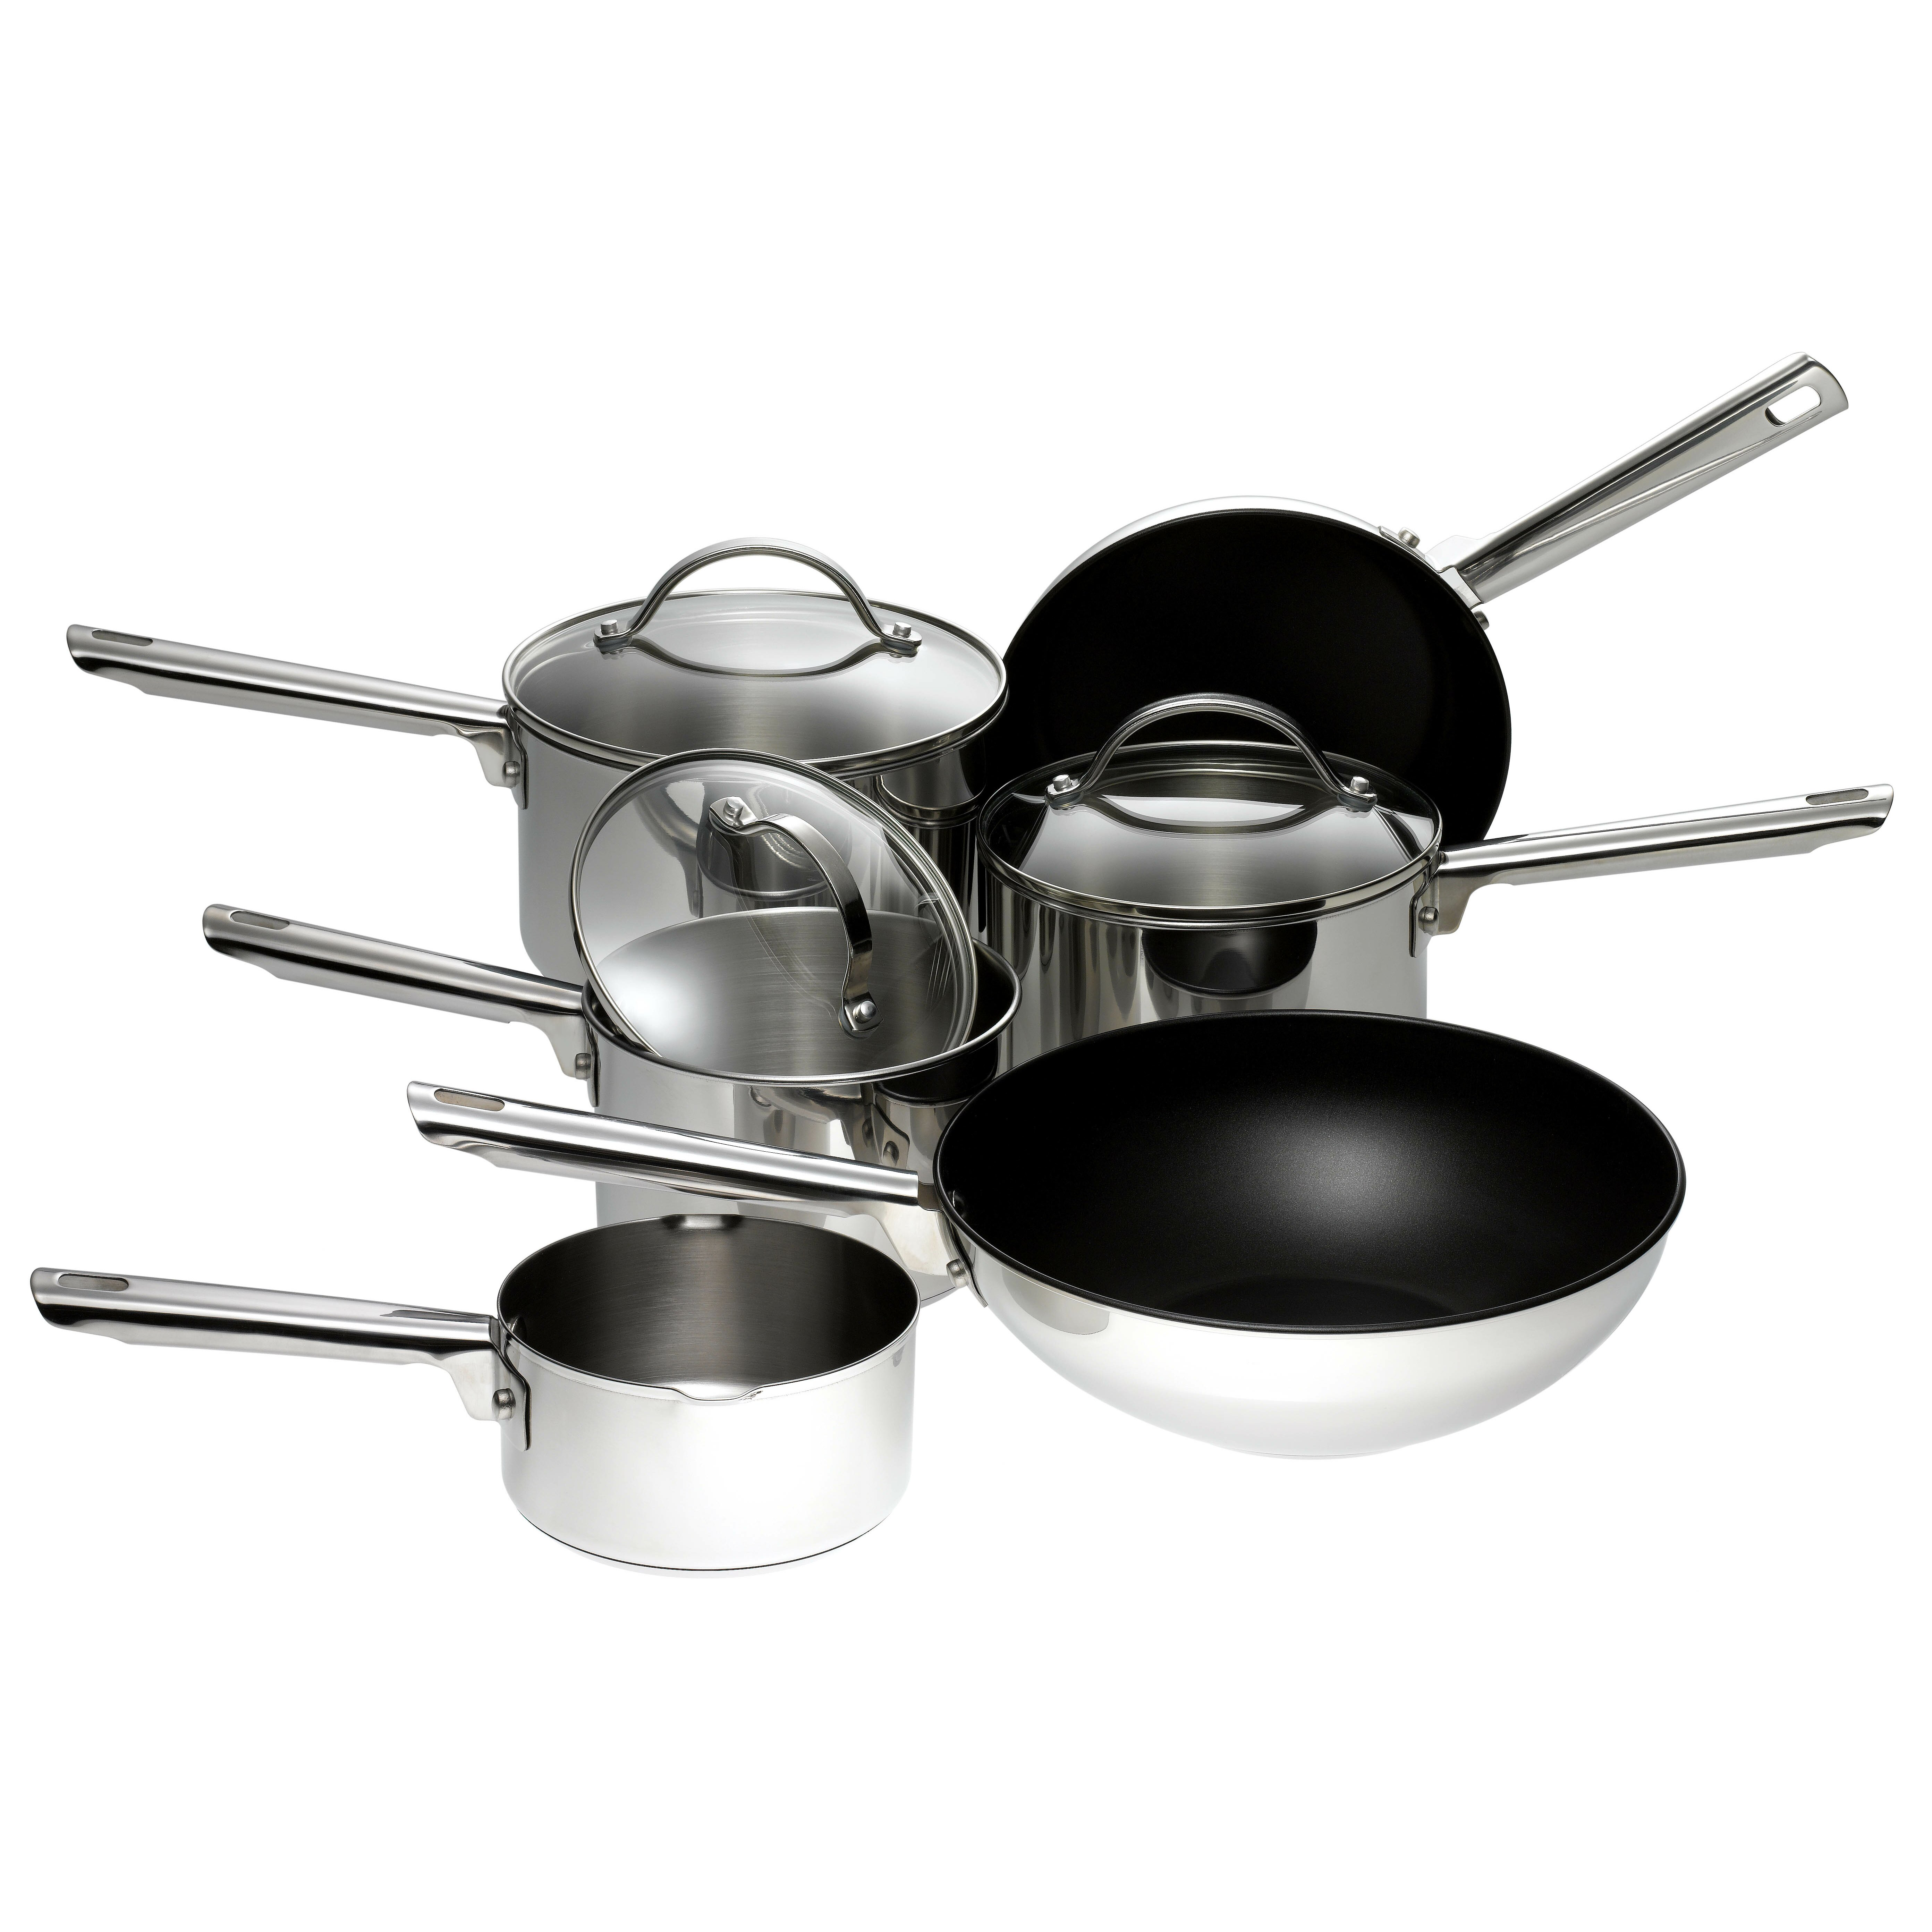 28 15 best cookware sets in non stick and stainless so